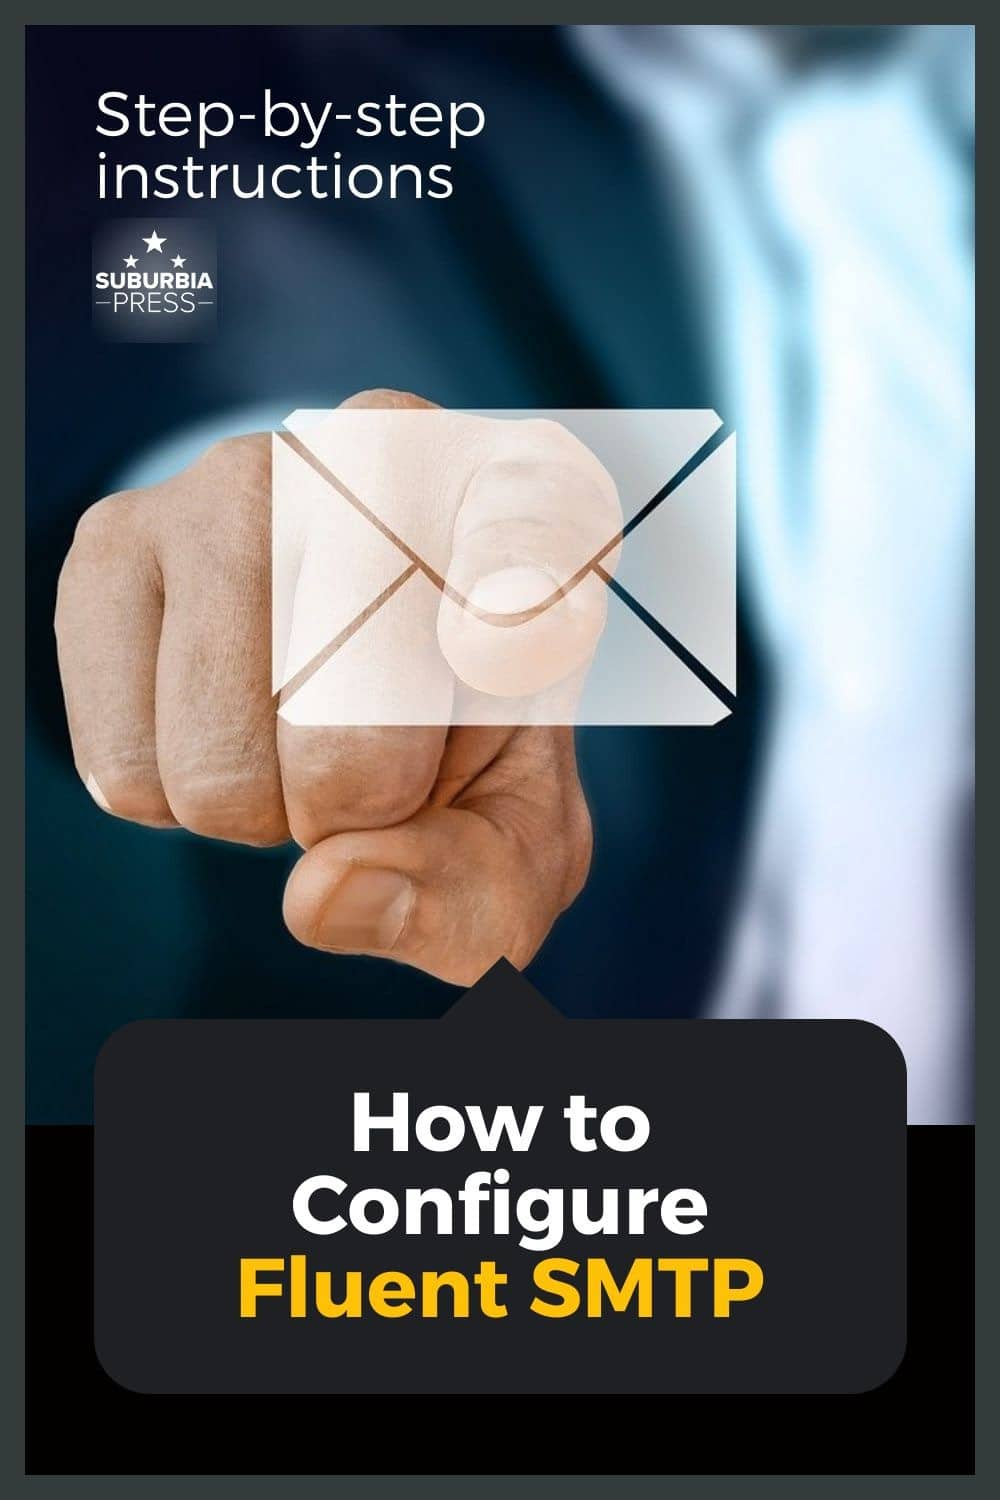 Configure Fluent SMTP to Avoid the SPAM Box for Your Email Marketing Messages